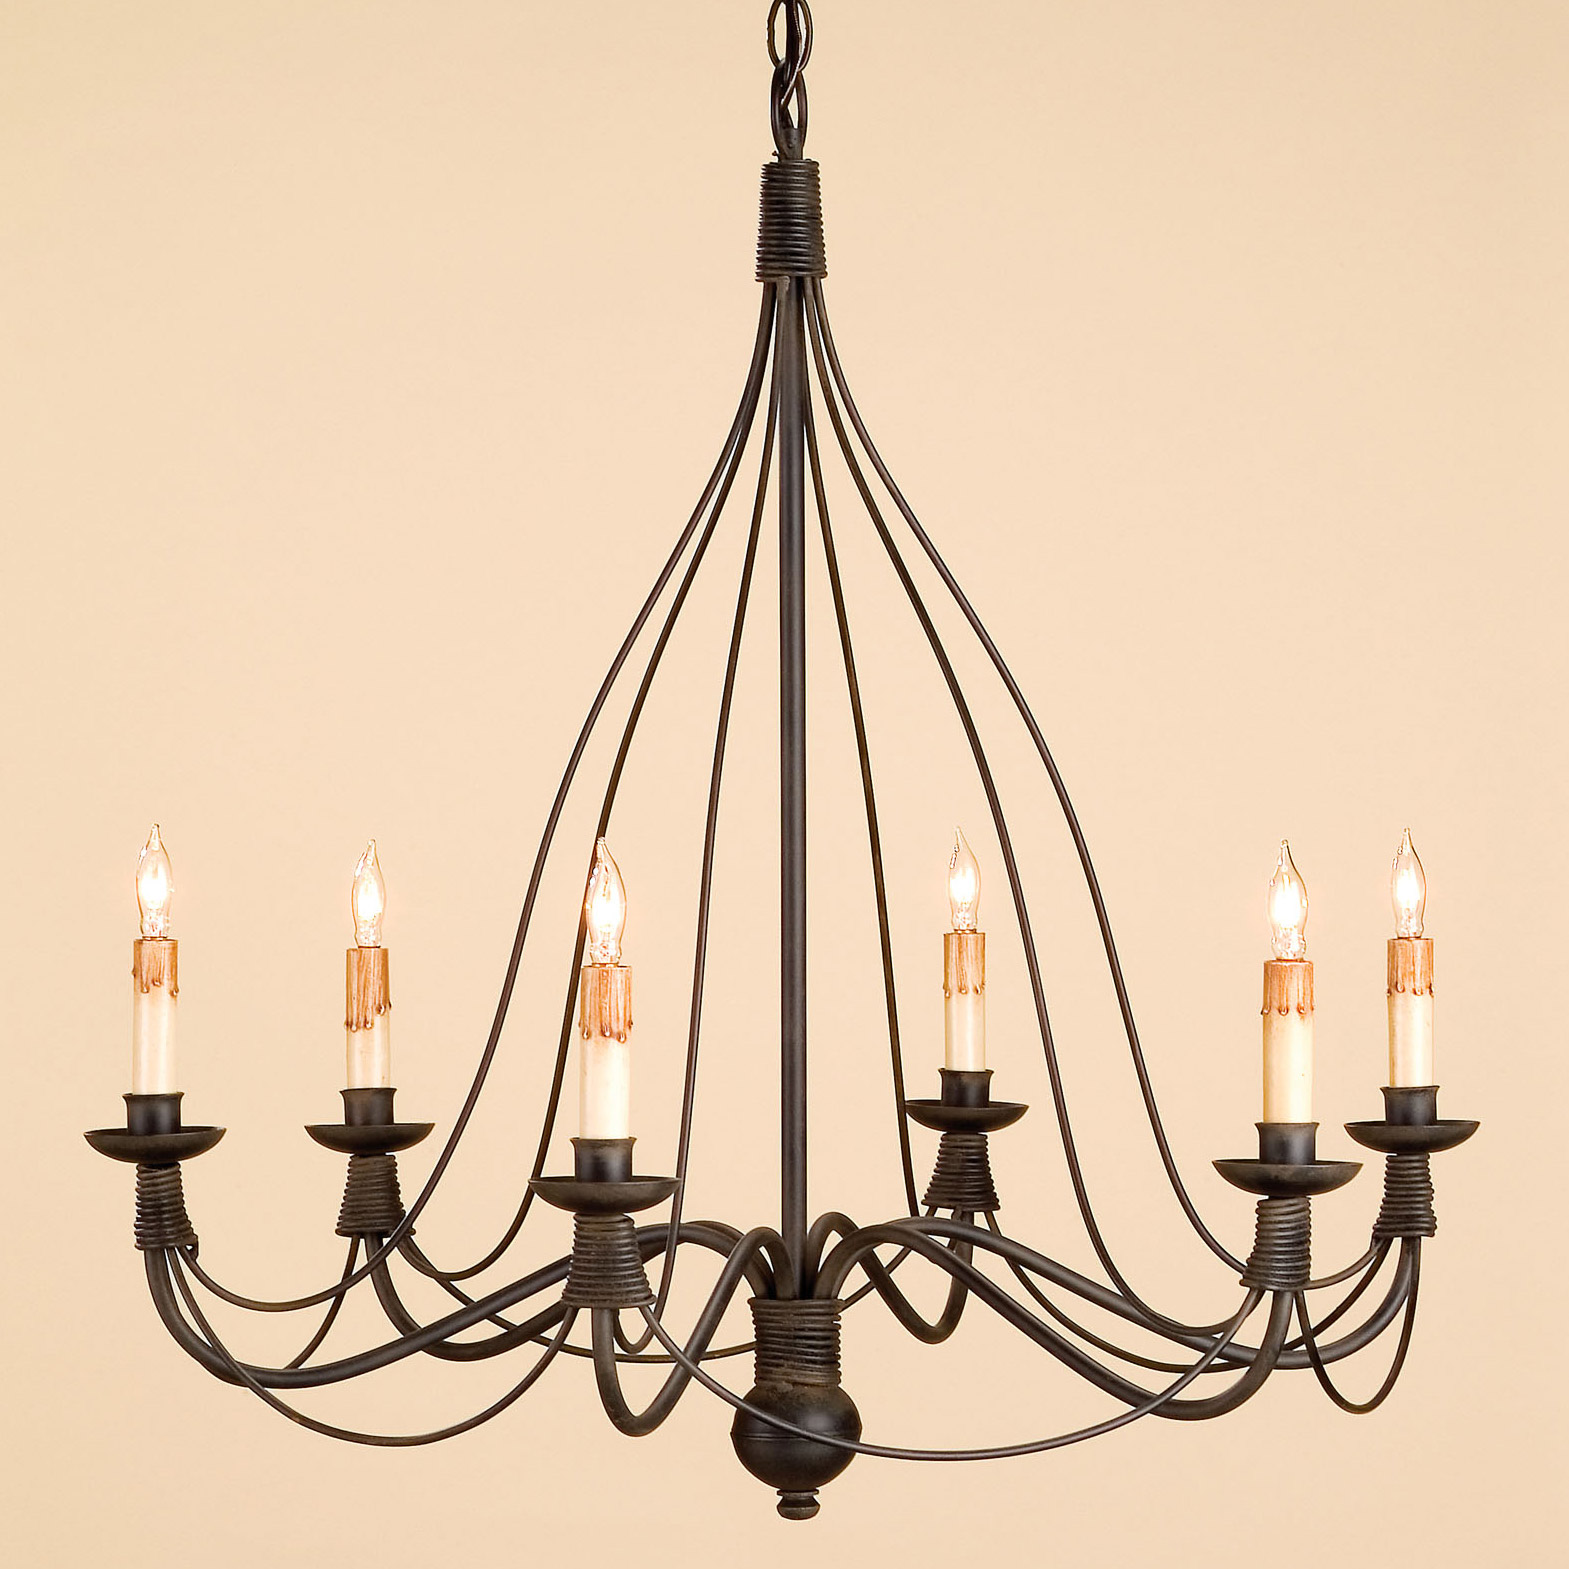 lighting chandeliers mid size chandeliers currey and company. Black Bedroom Furniture Sets. Home Design Ideas